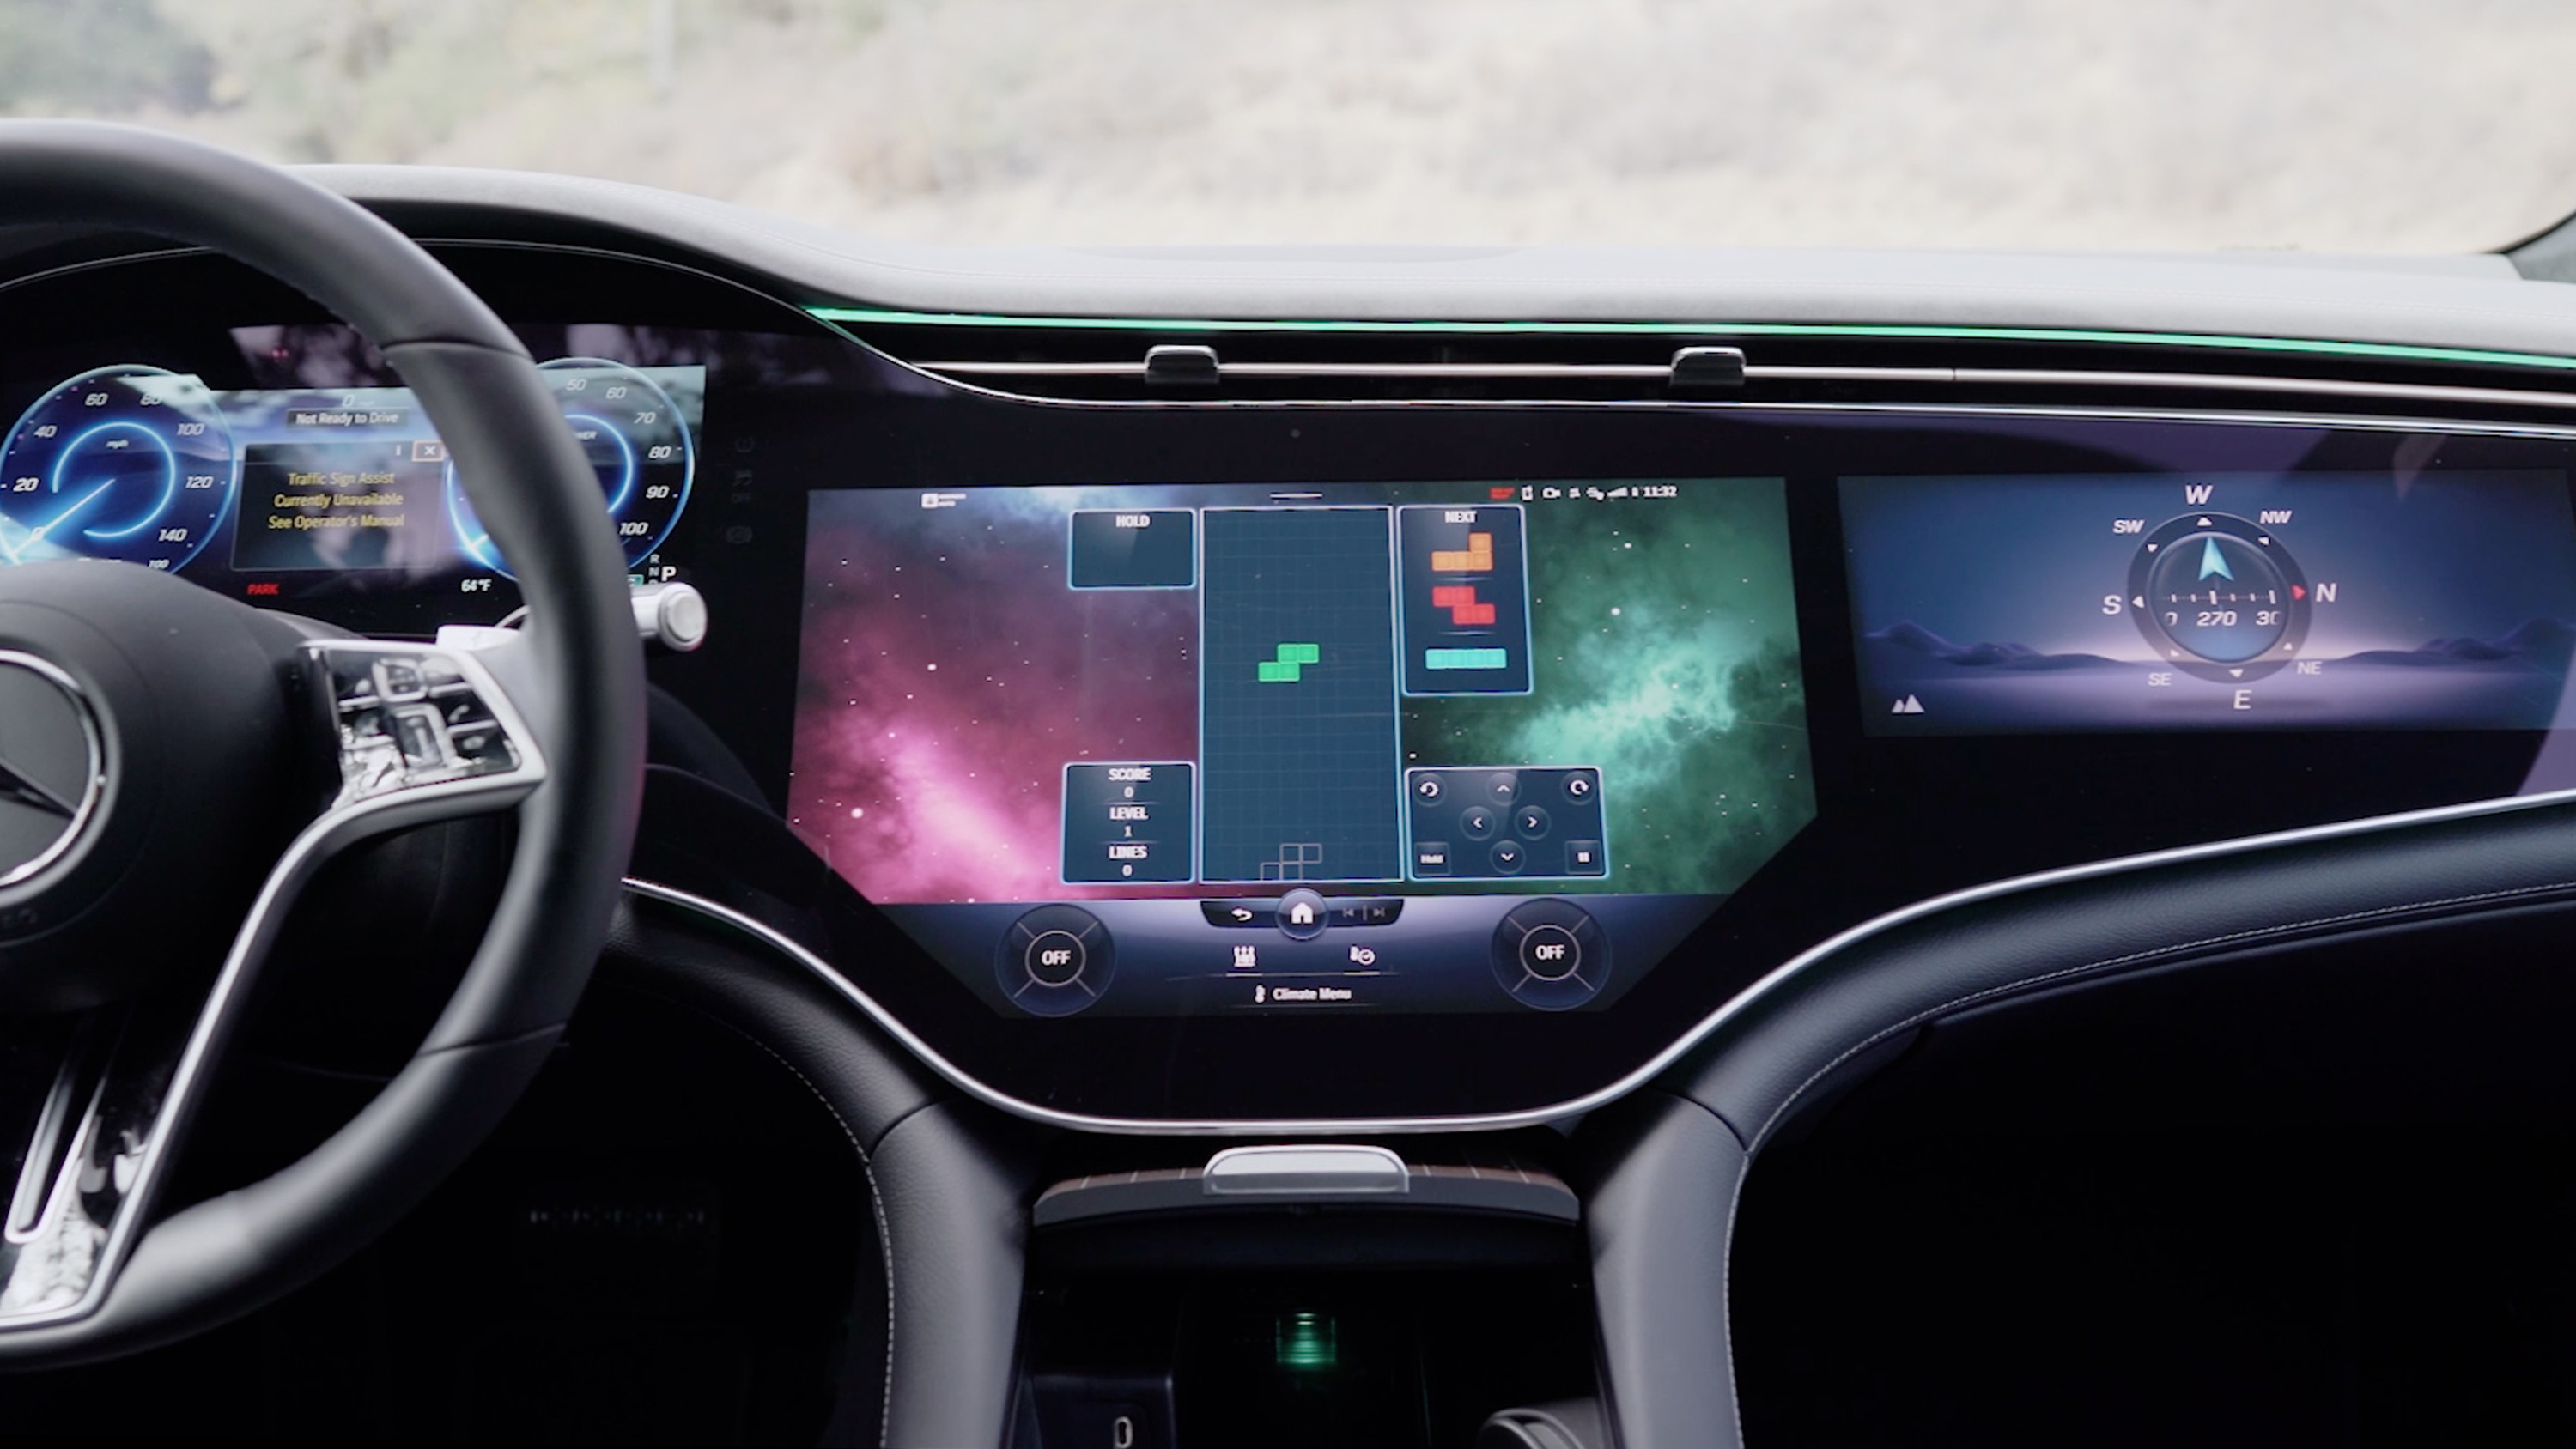 Video: Hands-on with Mercedes' Hyperscreen display in the EQS